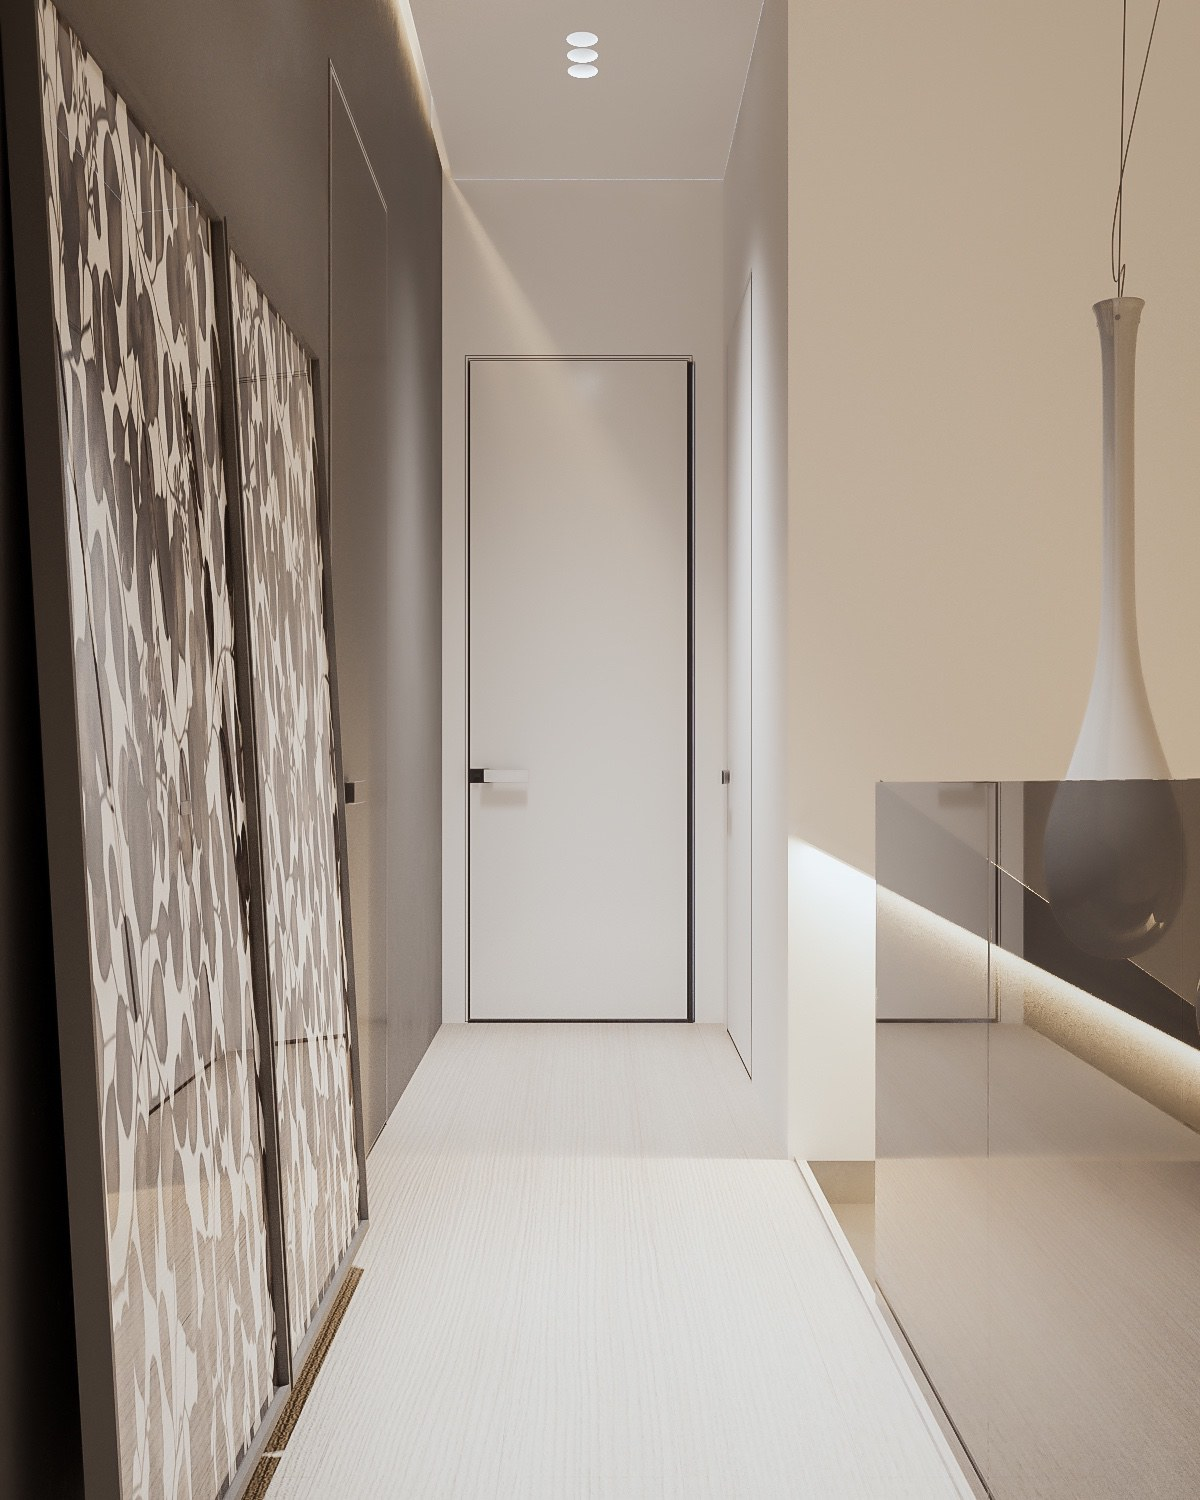 White Plywood Flooring In Modern Home Design - A minimalist family home with a bright bedroom for the kids